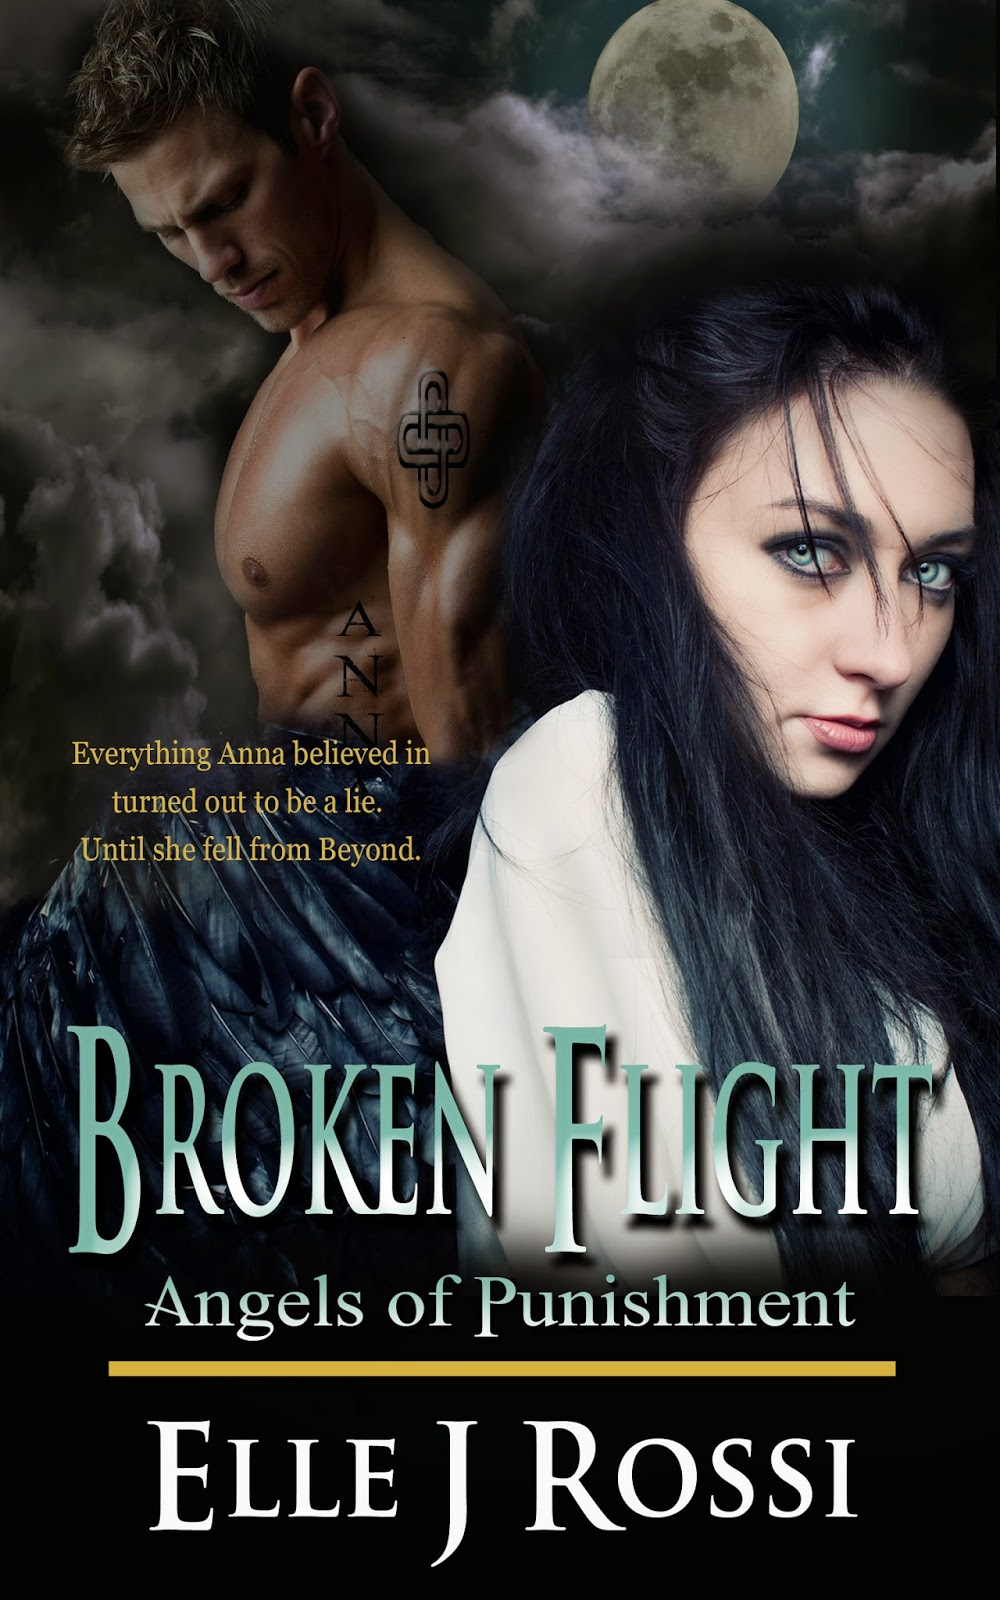 https://www.goodreads.com/book/show/16494696-broken-flight